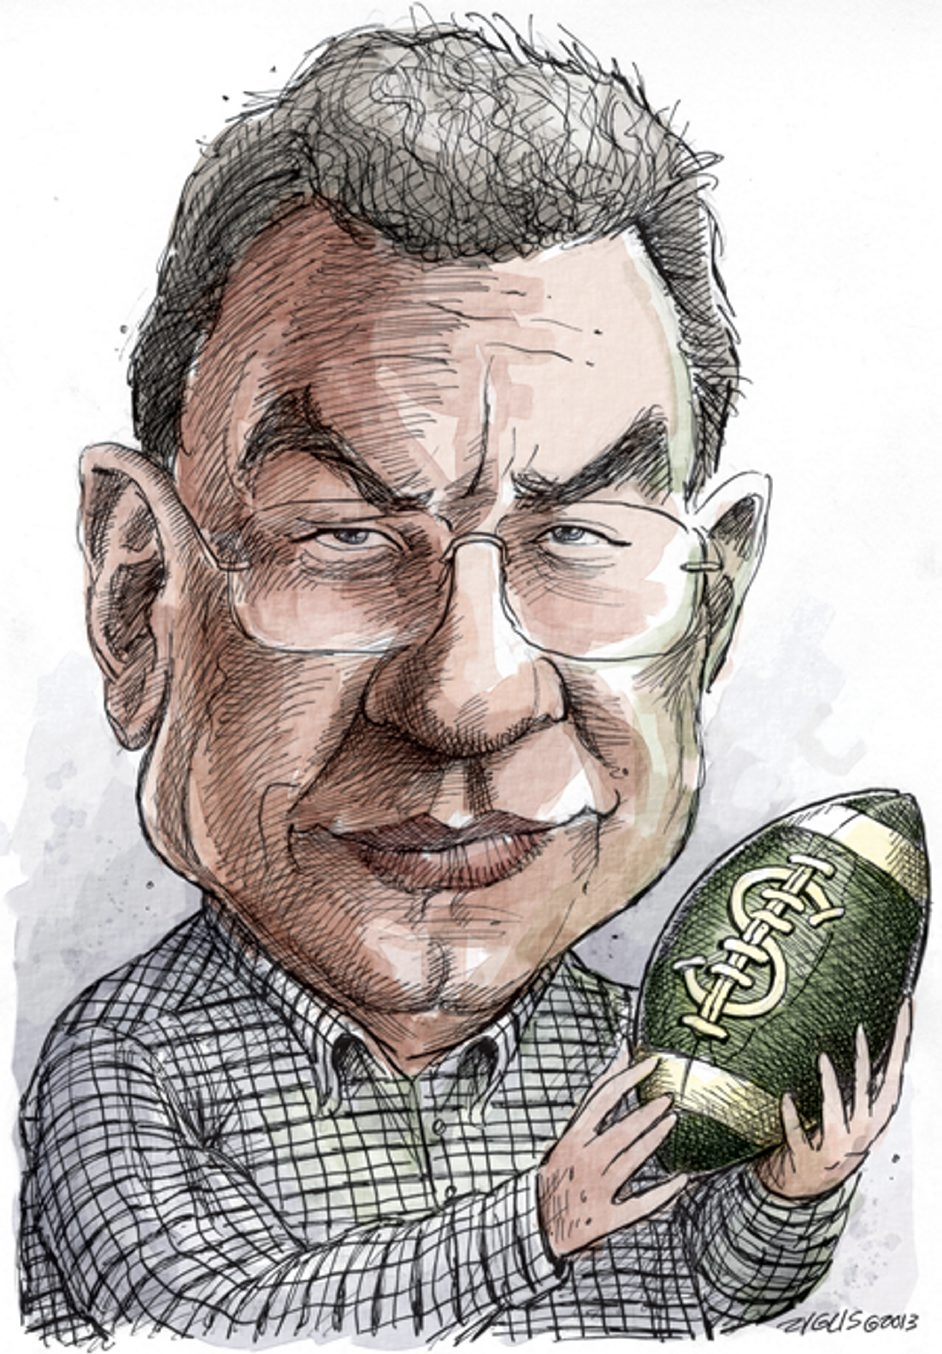 Gregg Easterbrook takes aim at hypocrisy in the National Football League and big money college football.